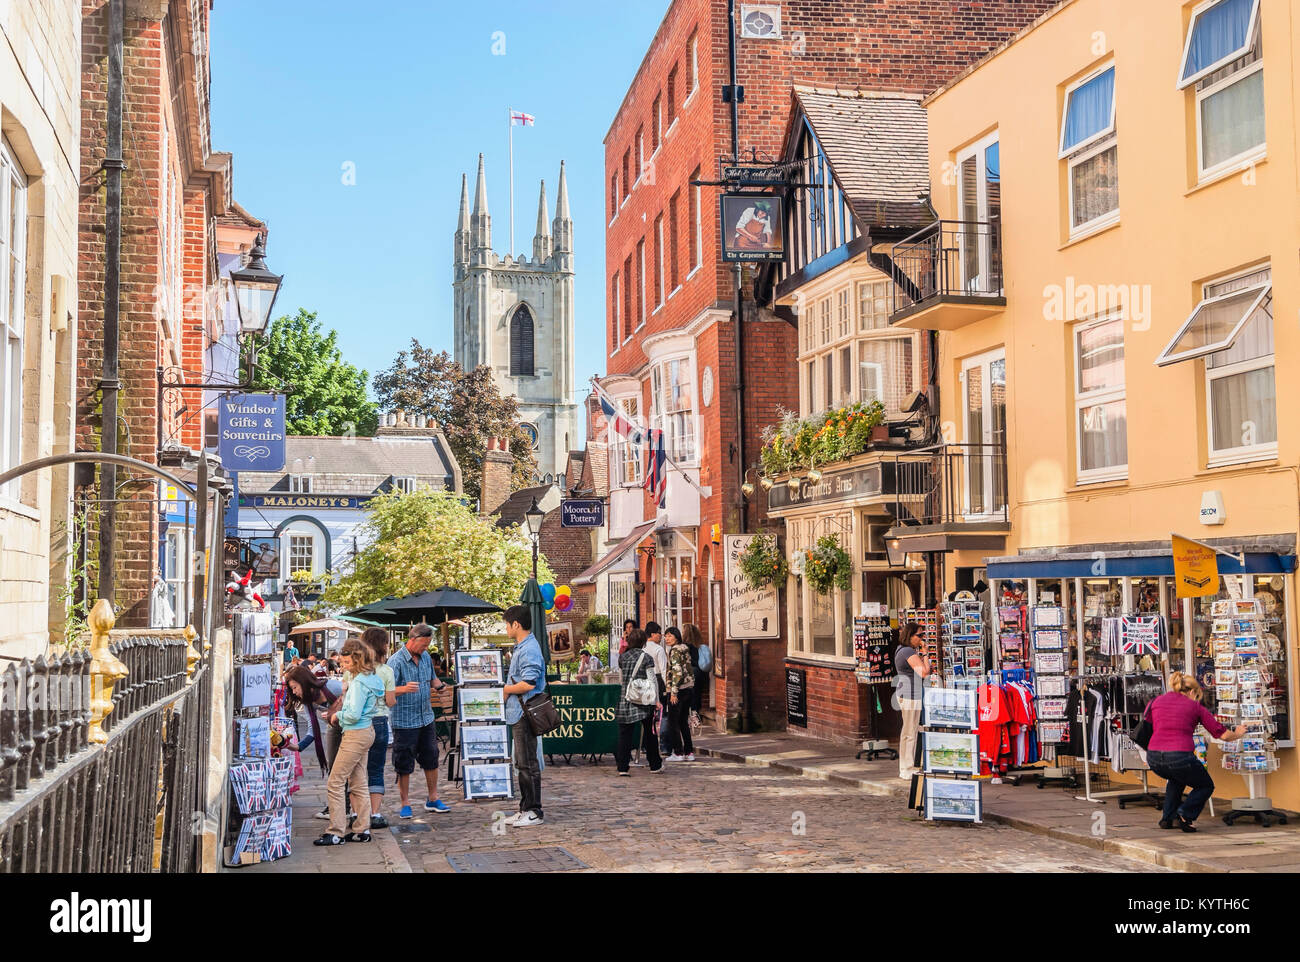 Historical town centre of Windsor, Berkshire, England. | Touristen im historischen Stadtzentrum von Windsor, England. - Stock Image